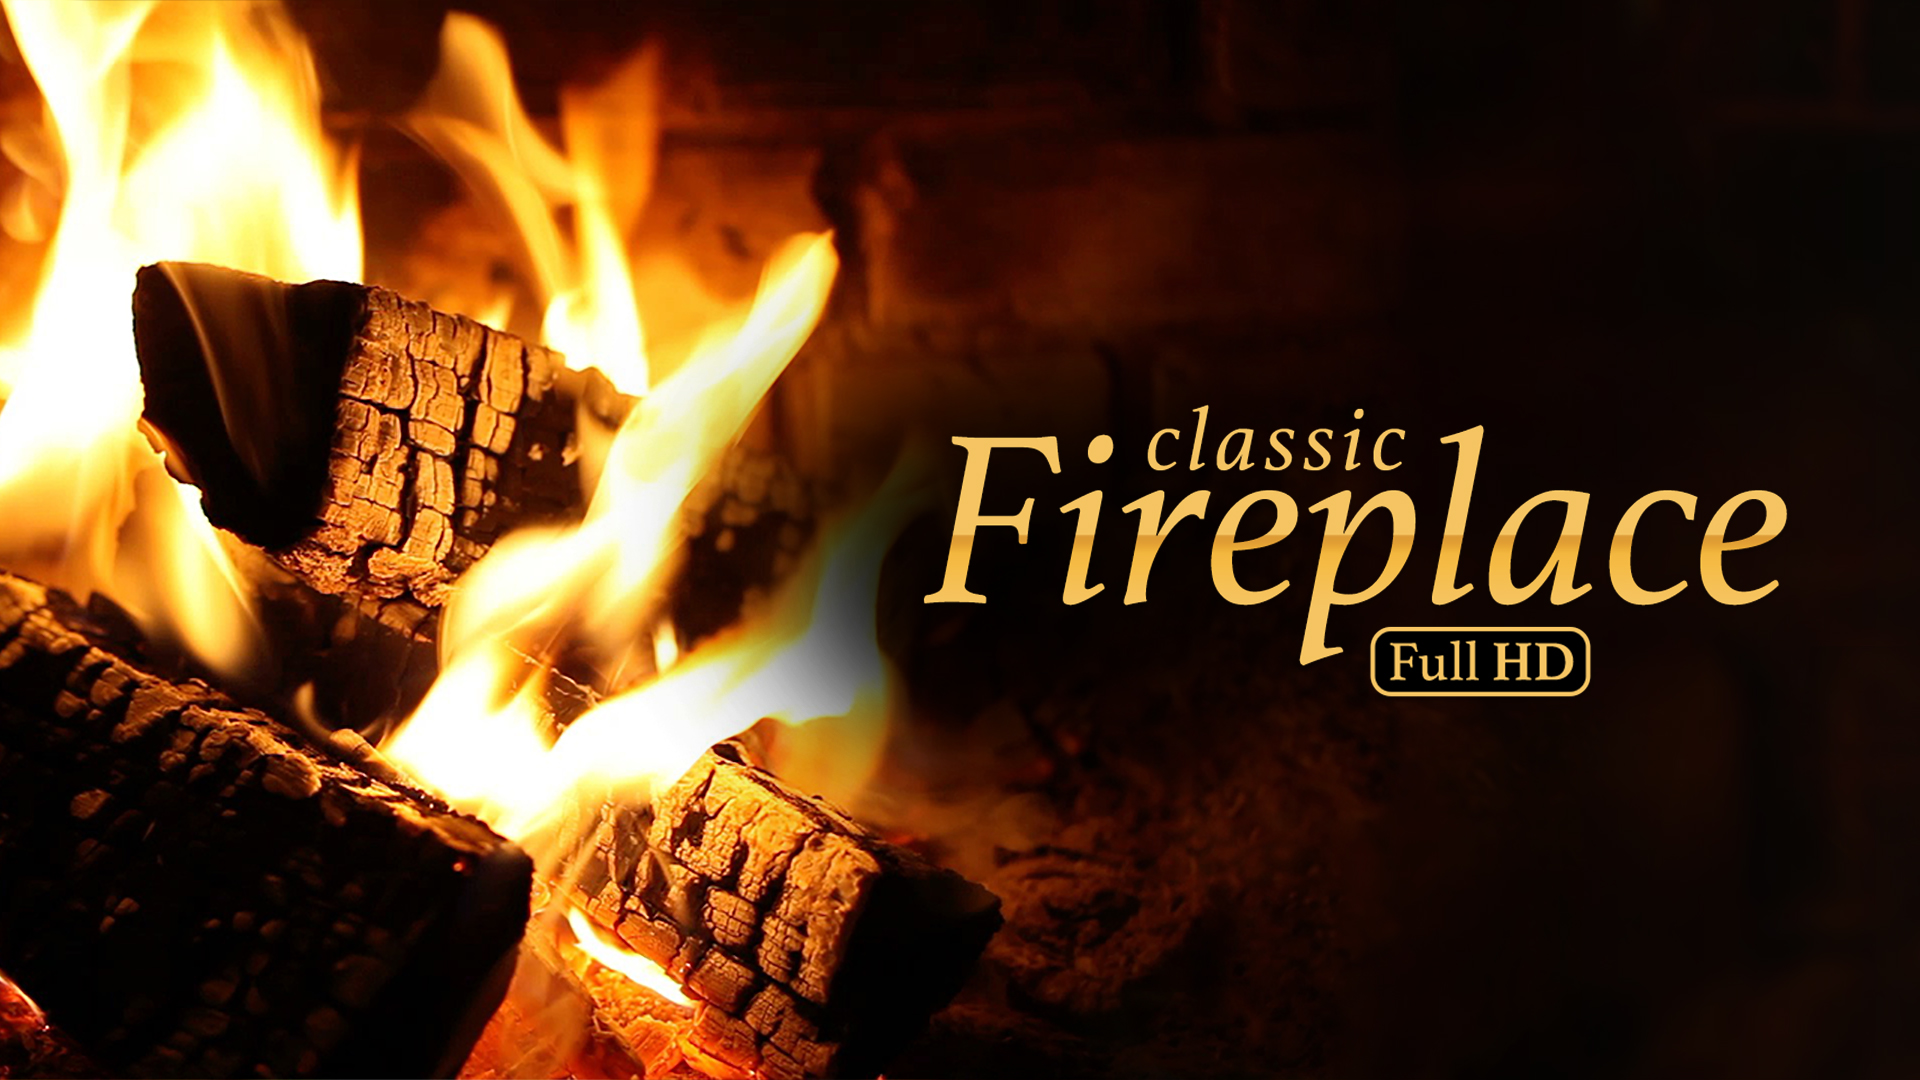 classic Fireplace – relaxing and romantic fire flames screenshot 5